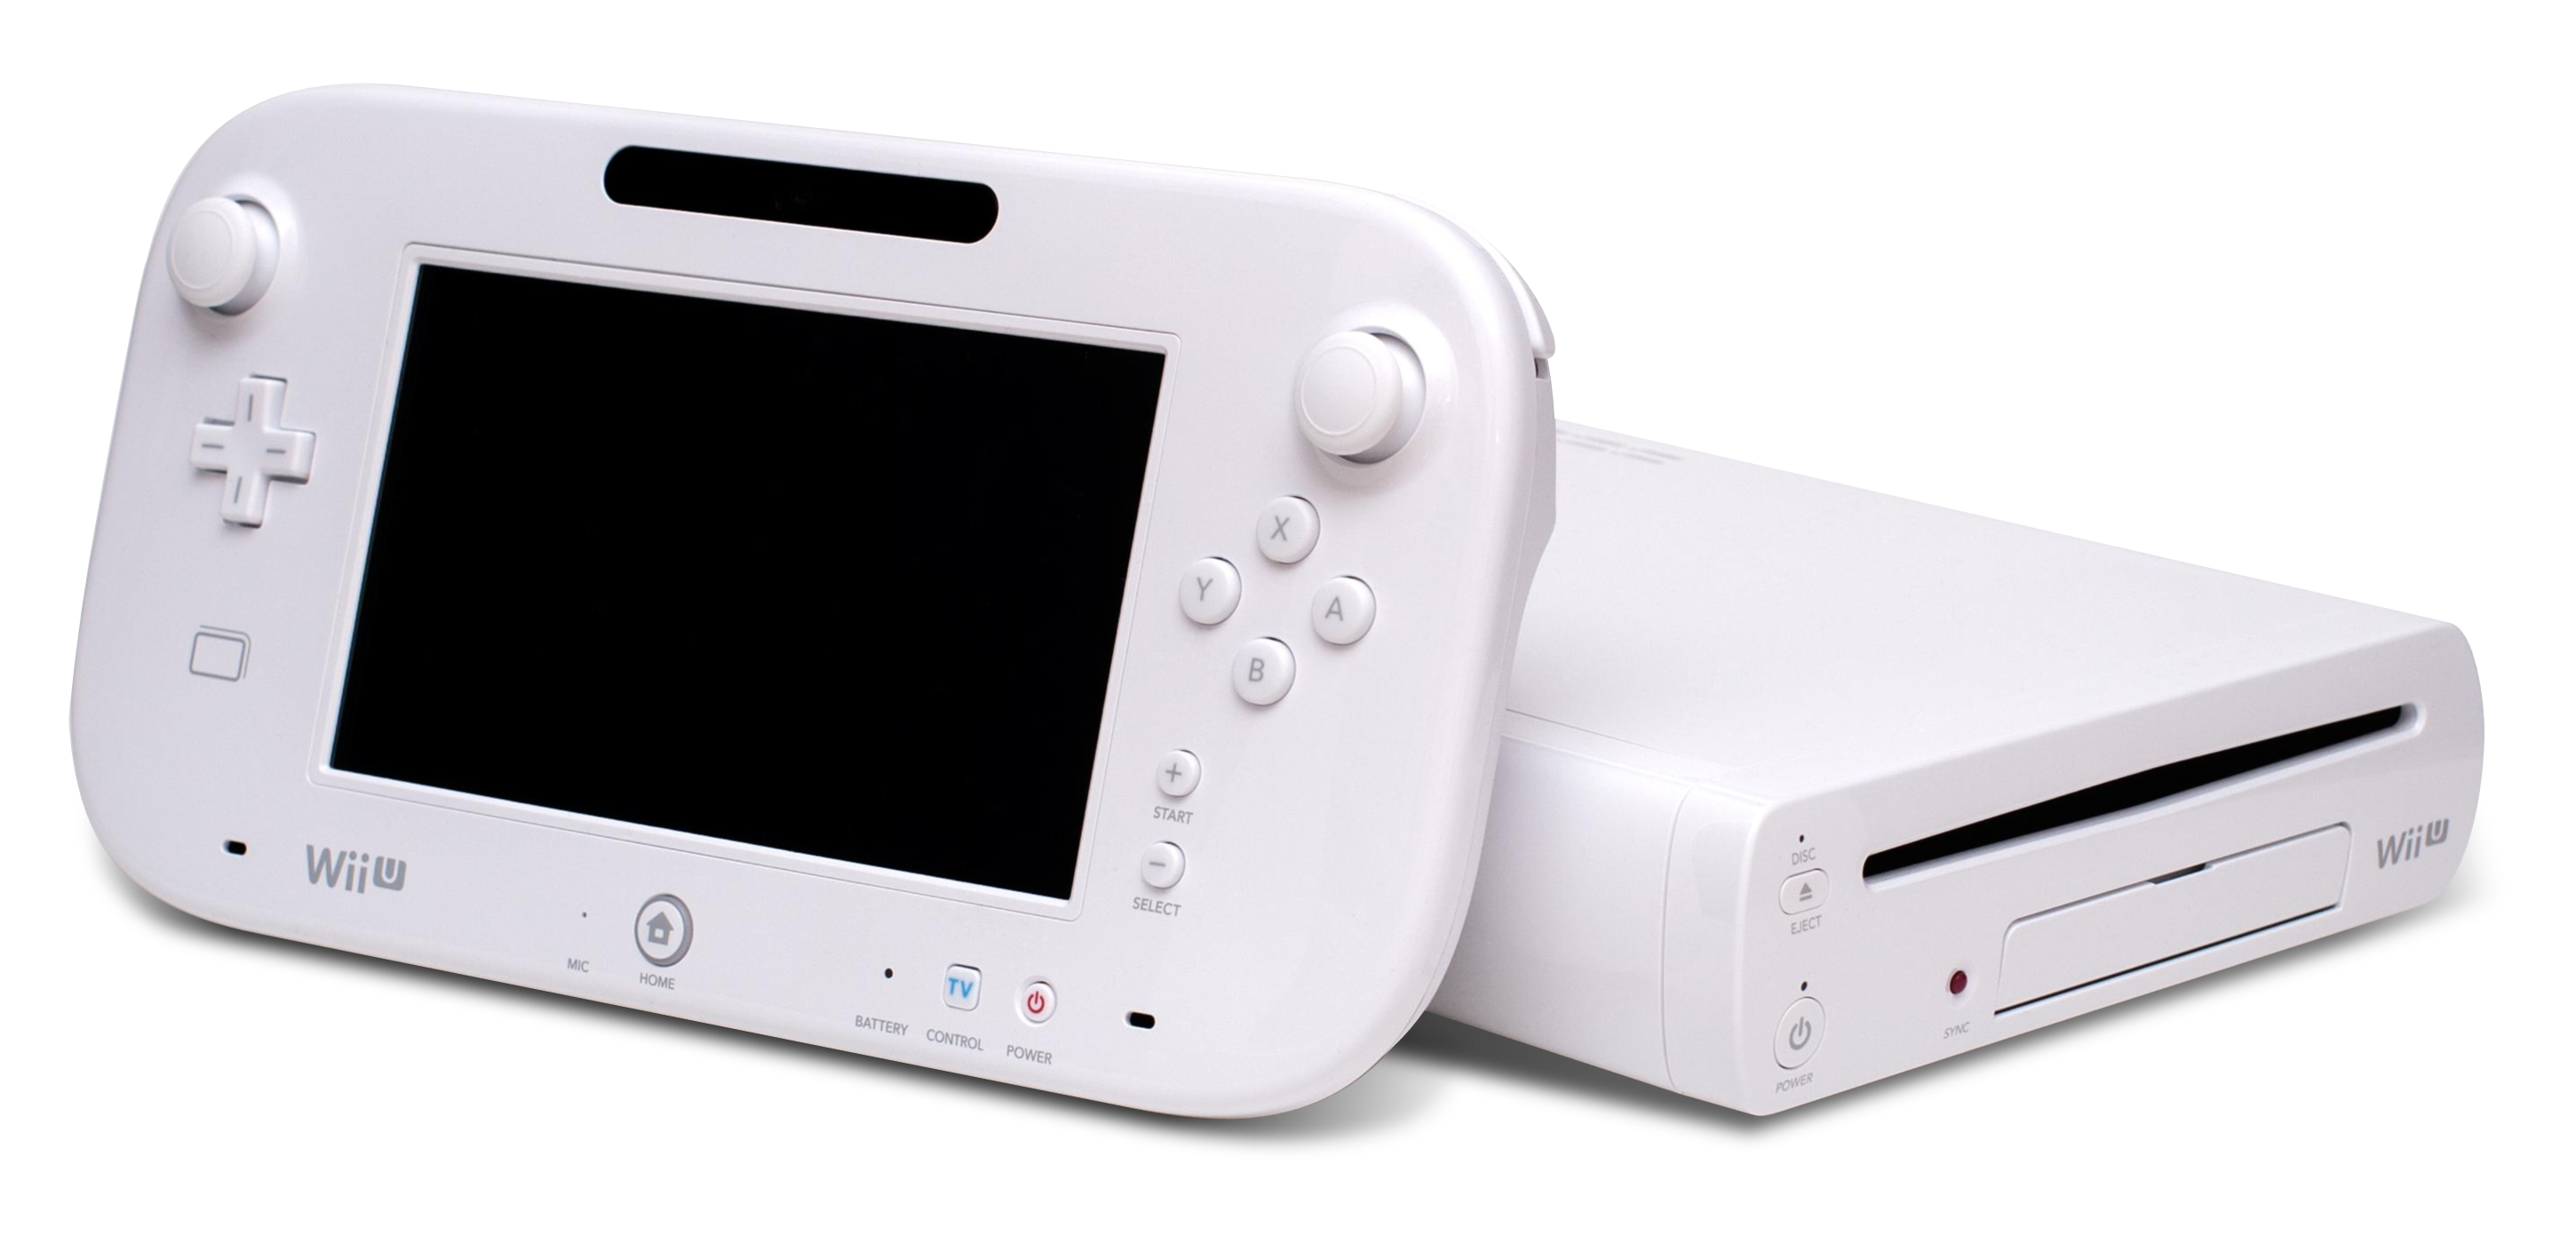 http://upload.wikimedia.org/wikipedia/commons/4/4a/Wii_U_Console_and_Gamepad.png